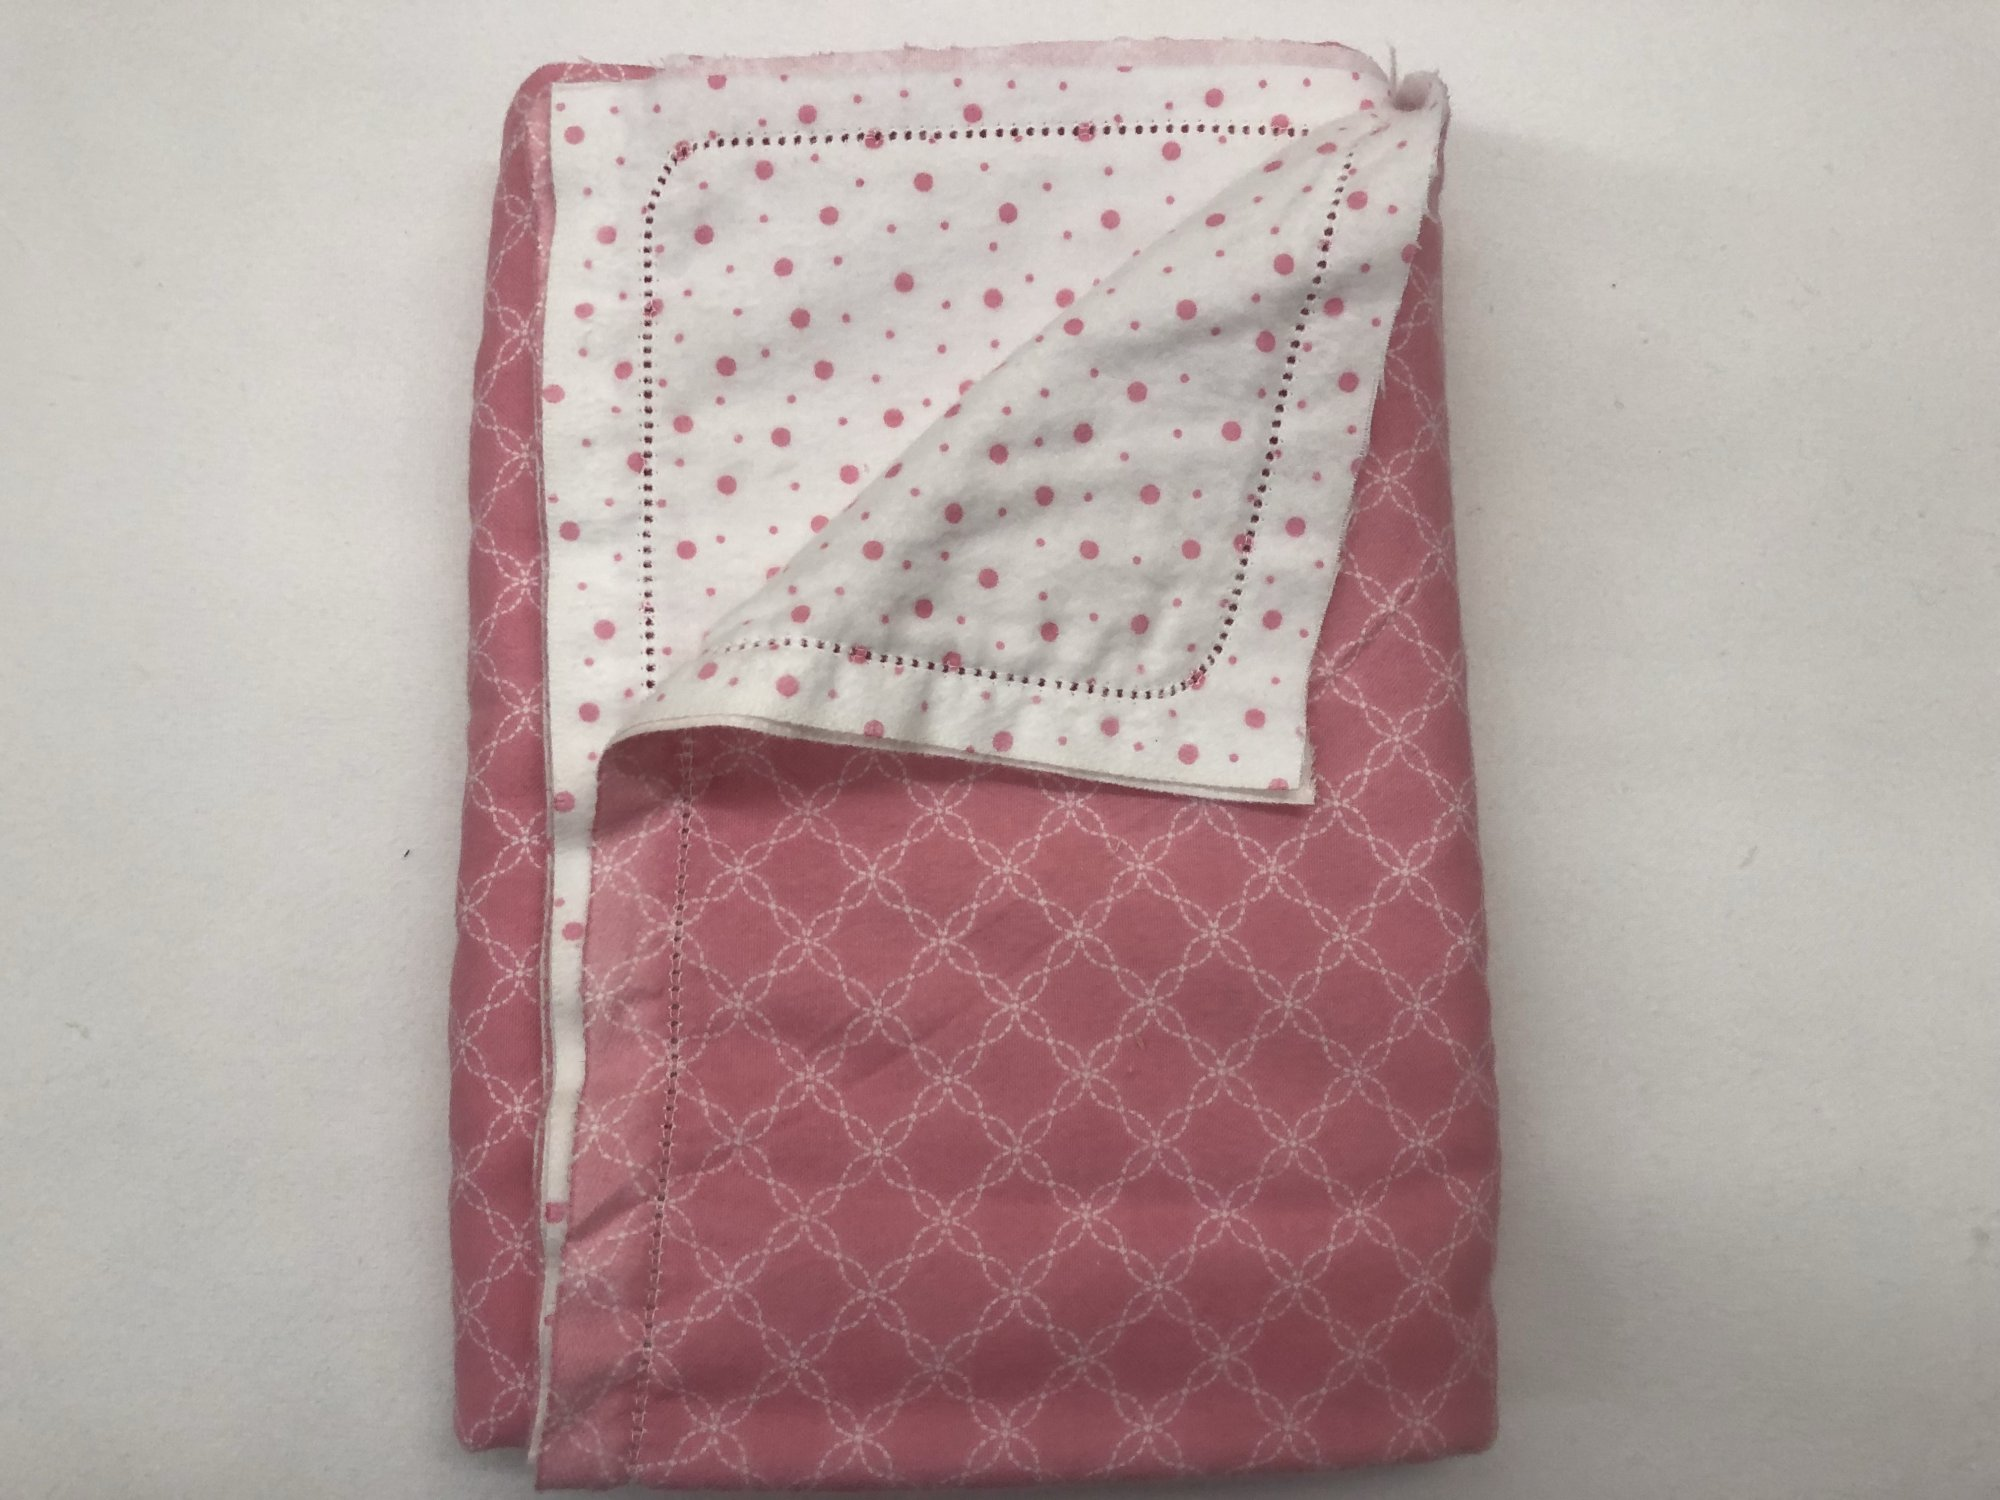 Pink with white flowers and white with pink polka dots